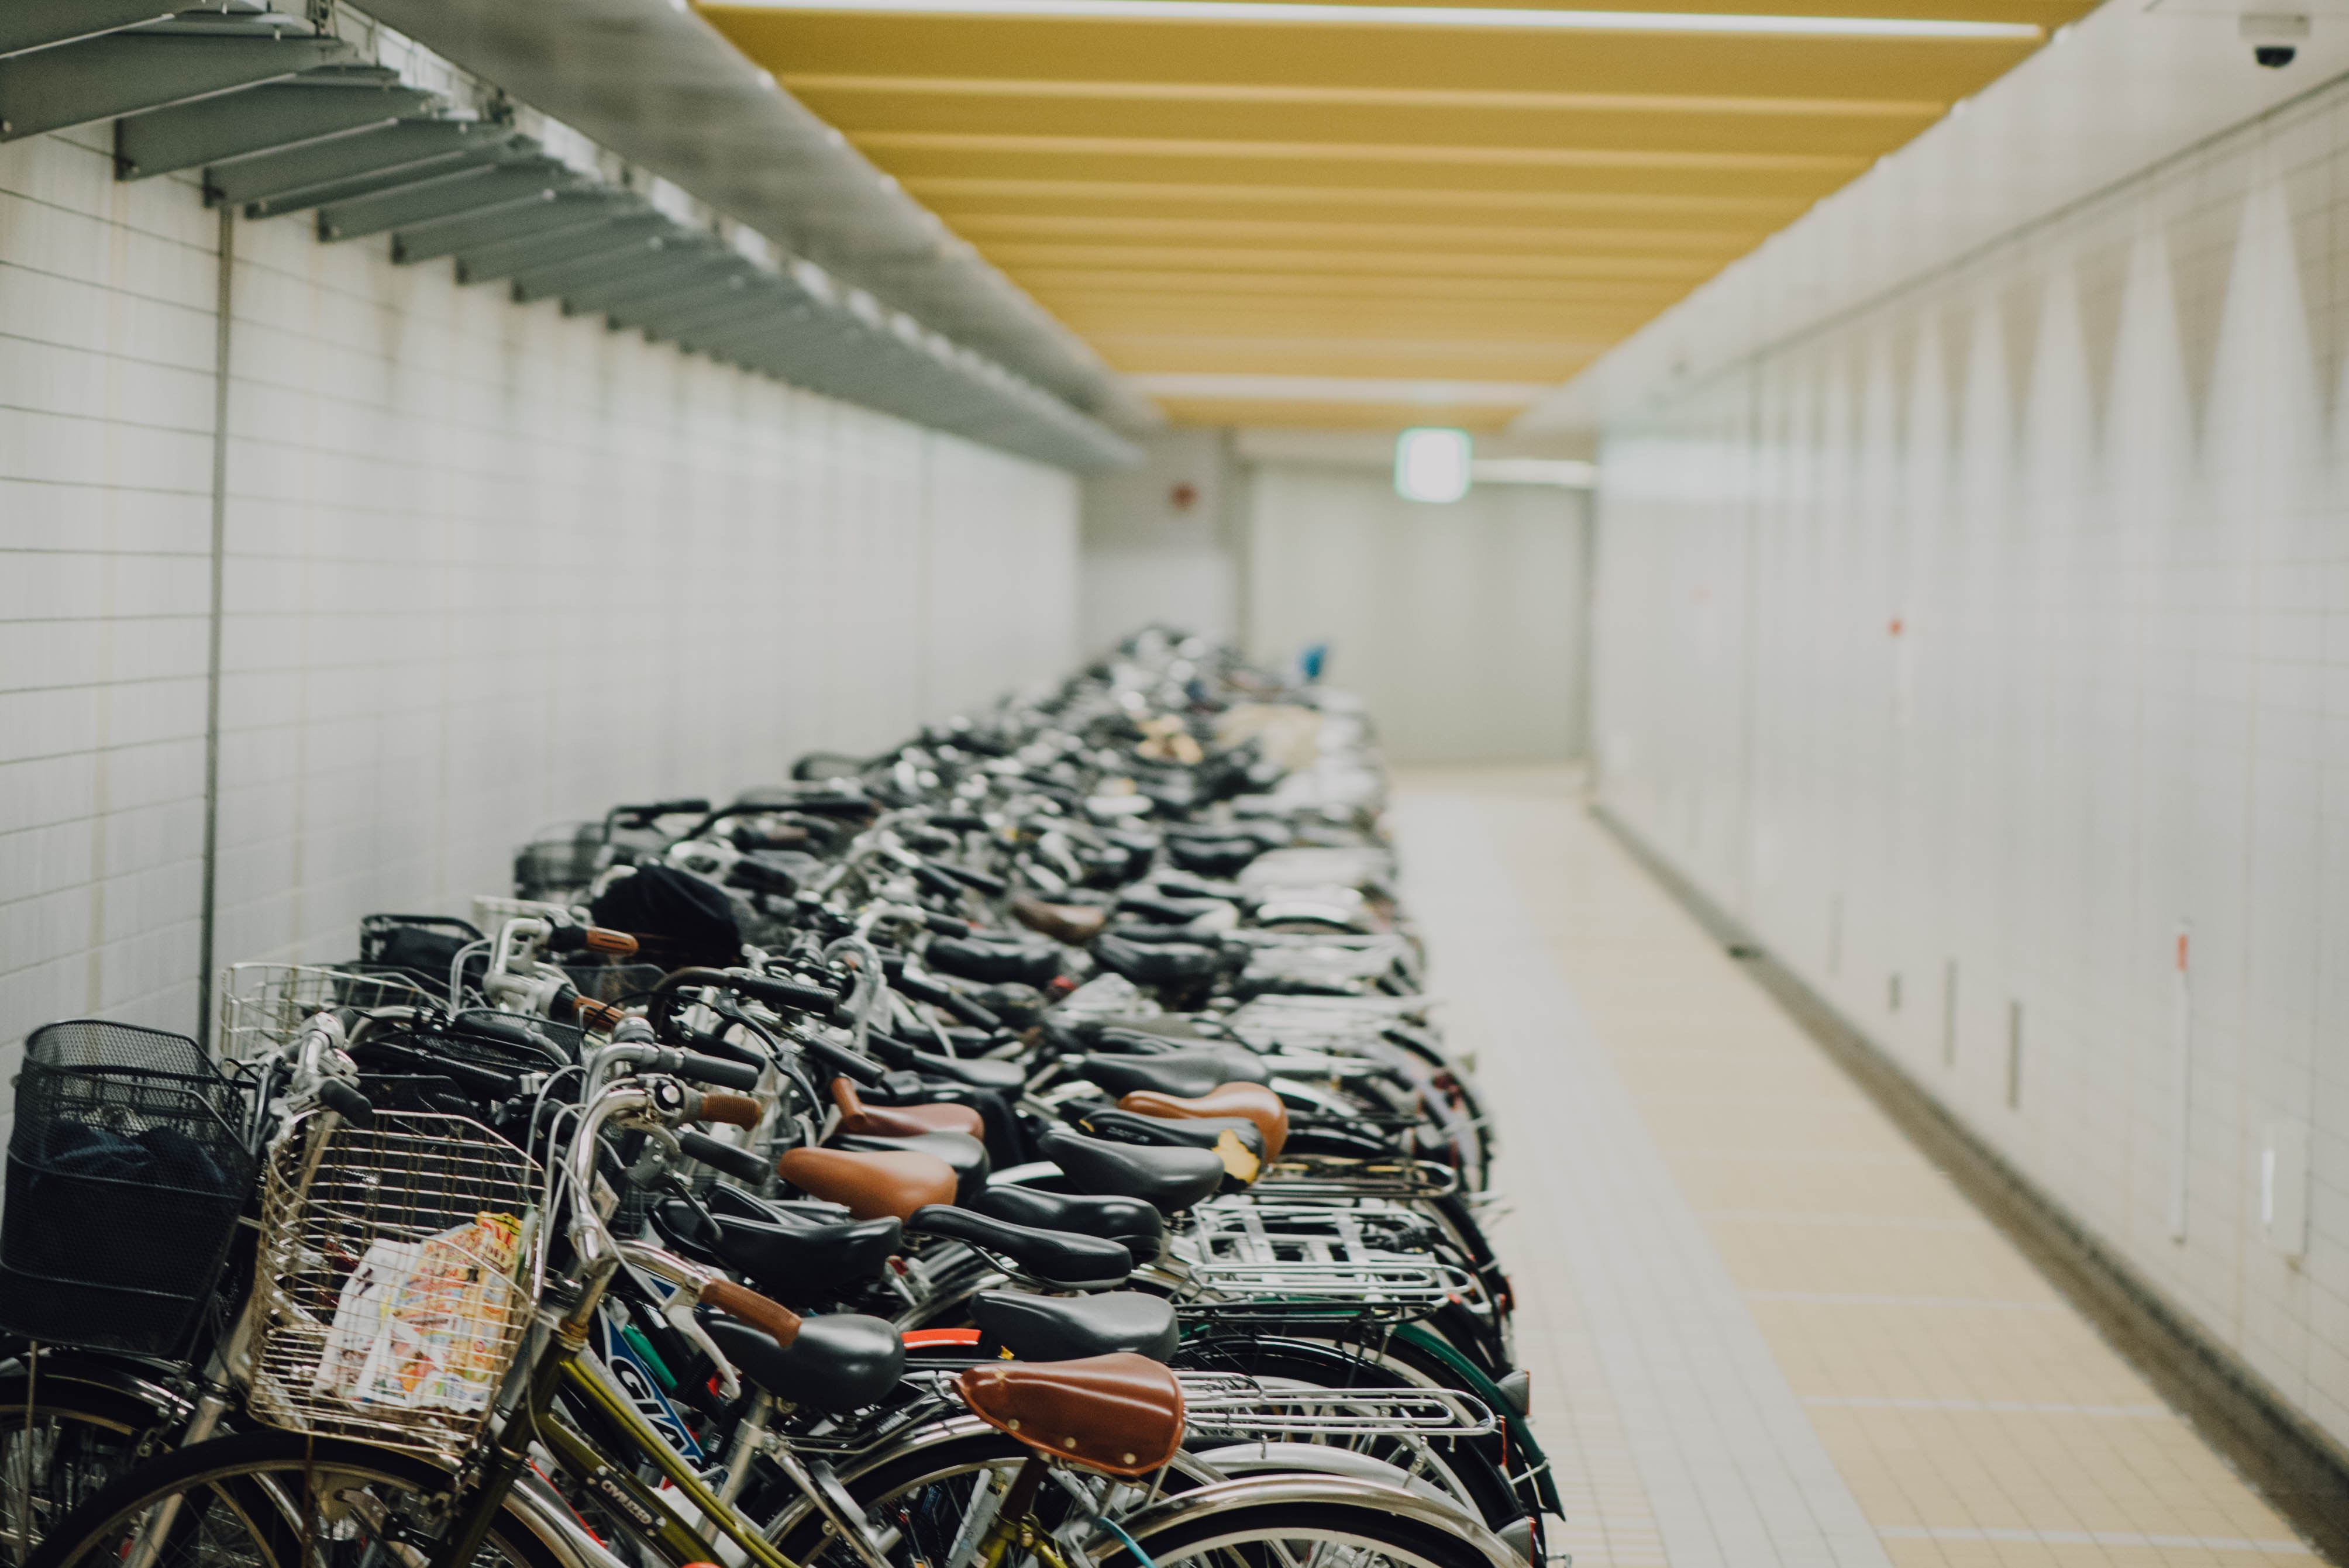 Should you rent a self-storage unit for your bike collection?